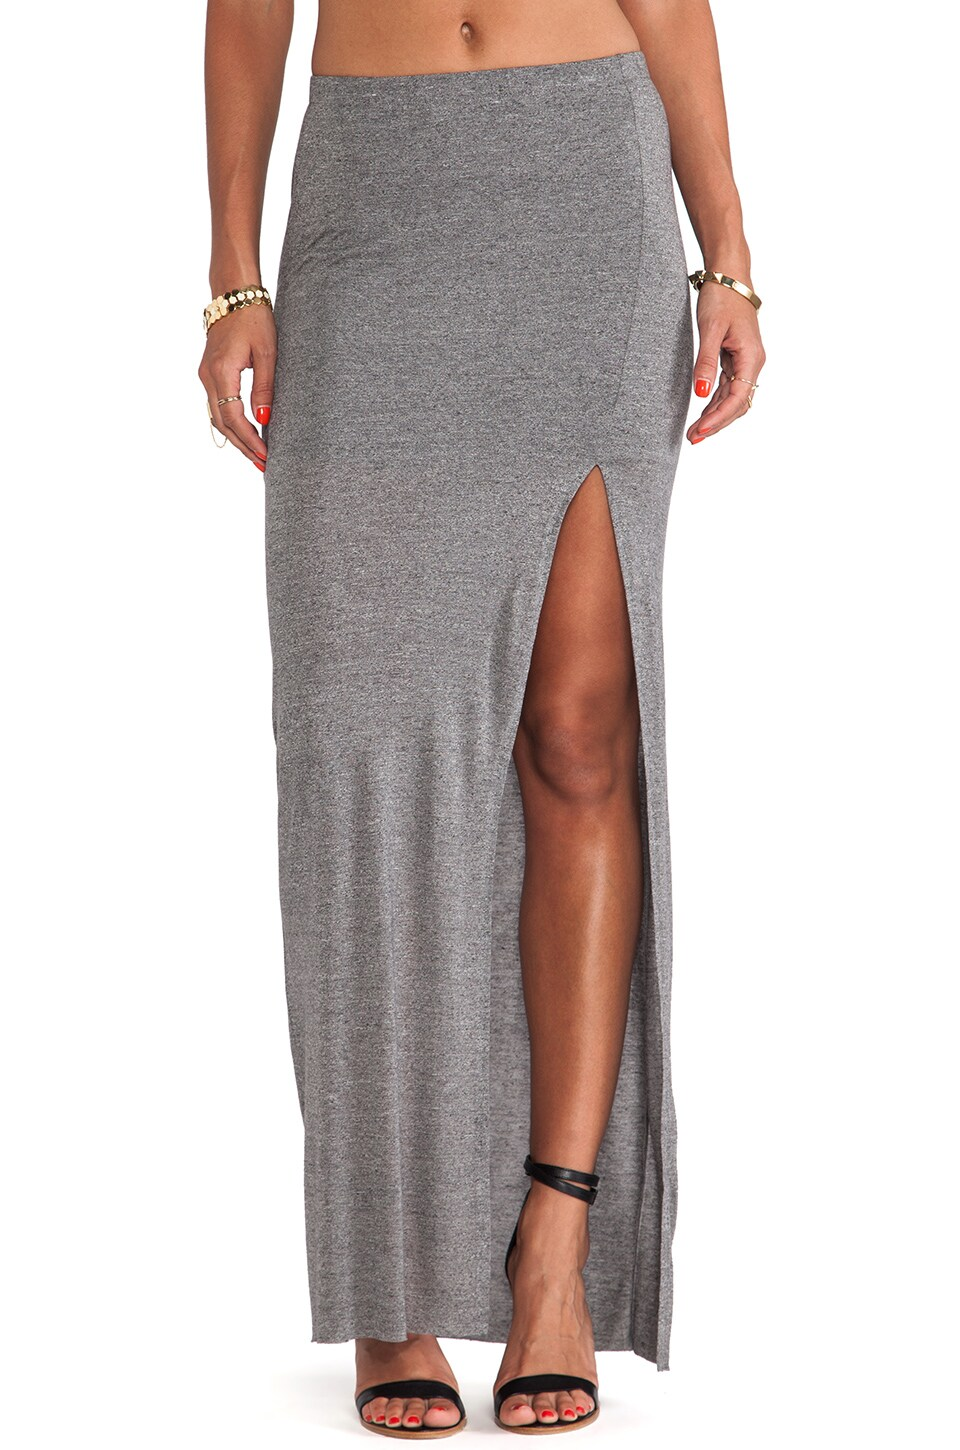 Bella Luxx Column Skirt in Ash Heather